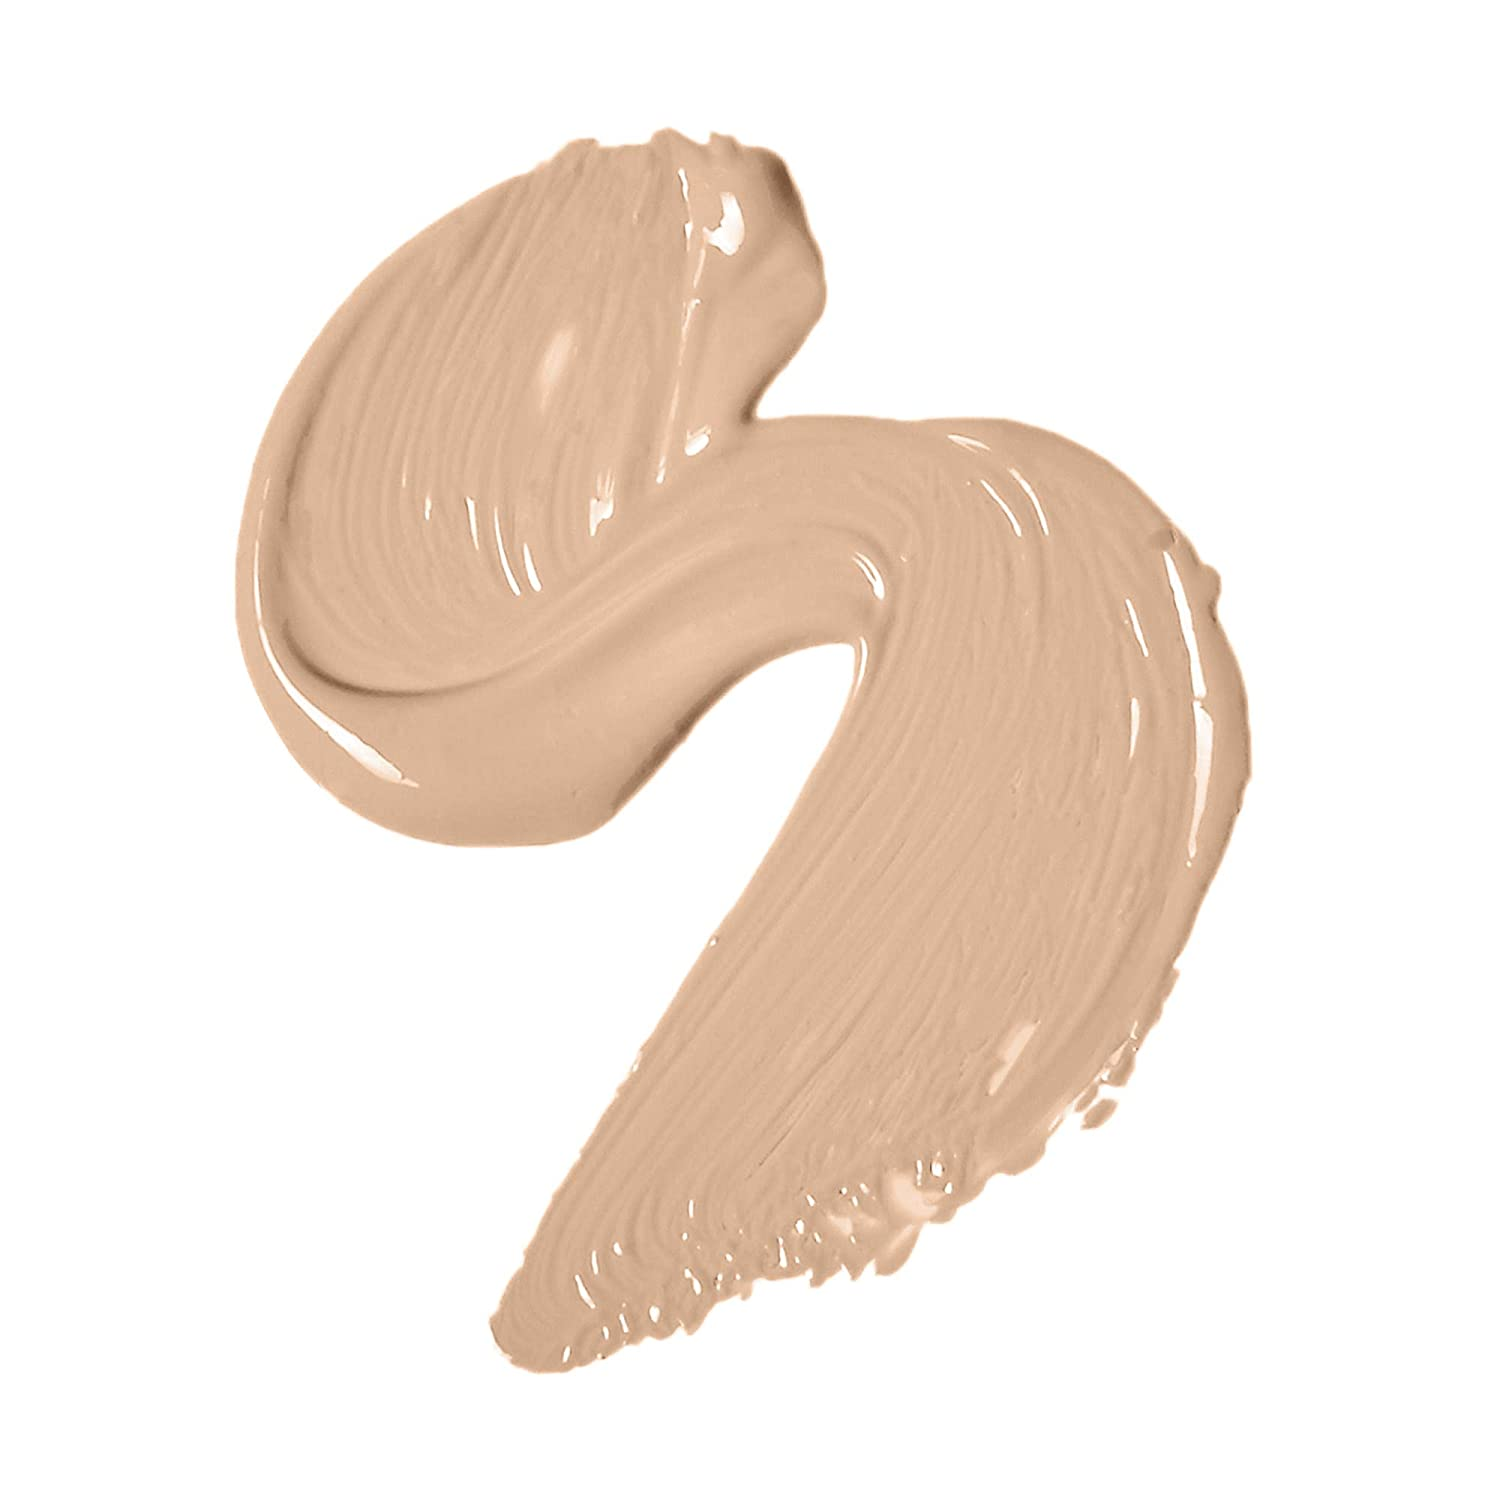 e.l.f., Hydrating Camo Concealer, Lightweight, Full Coverage, Long Lasting, Conceals, Corrects, Covers, Hydrates, Highlights, Light Sand, Satin Finish, 25 Shades, All-Day Wear, 0.20 Fl Oz: Beauty